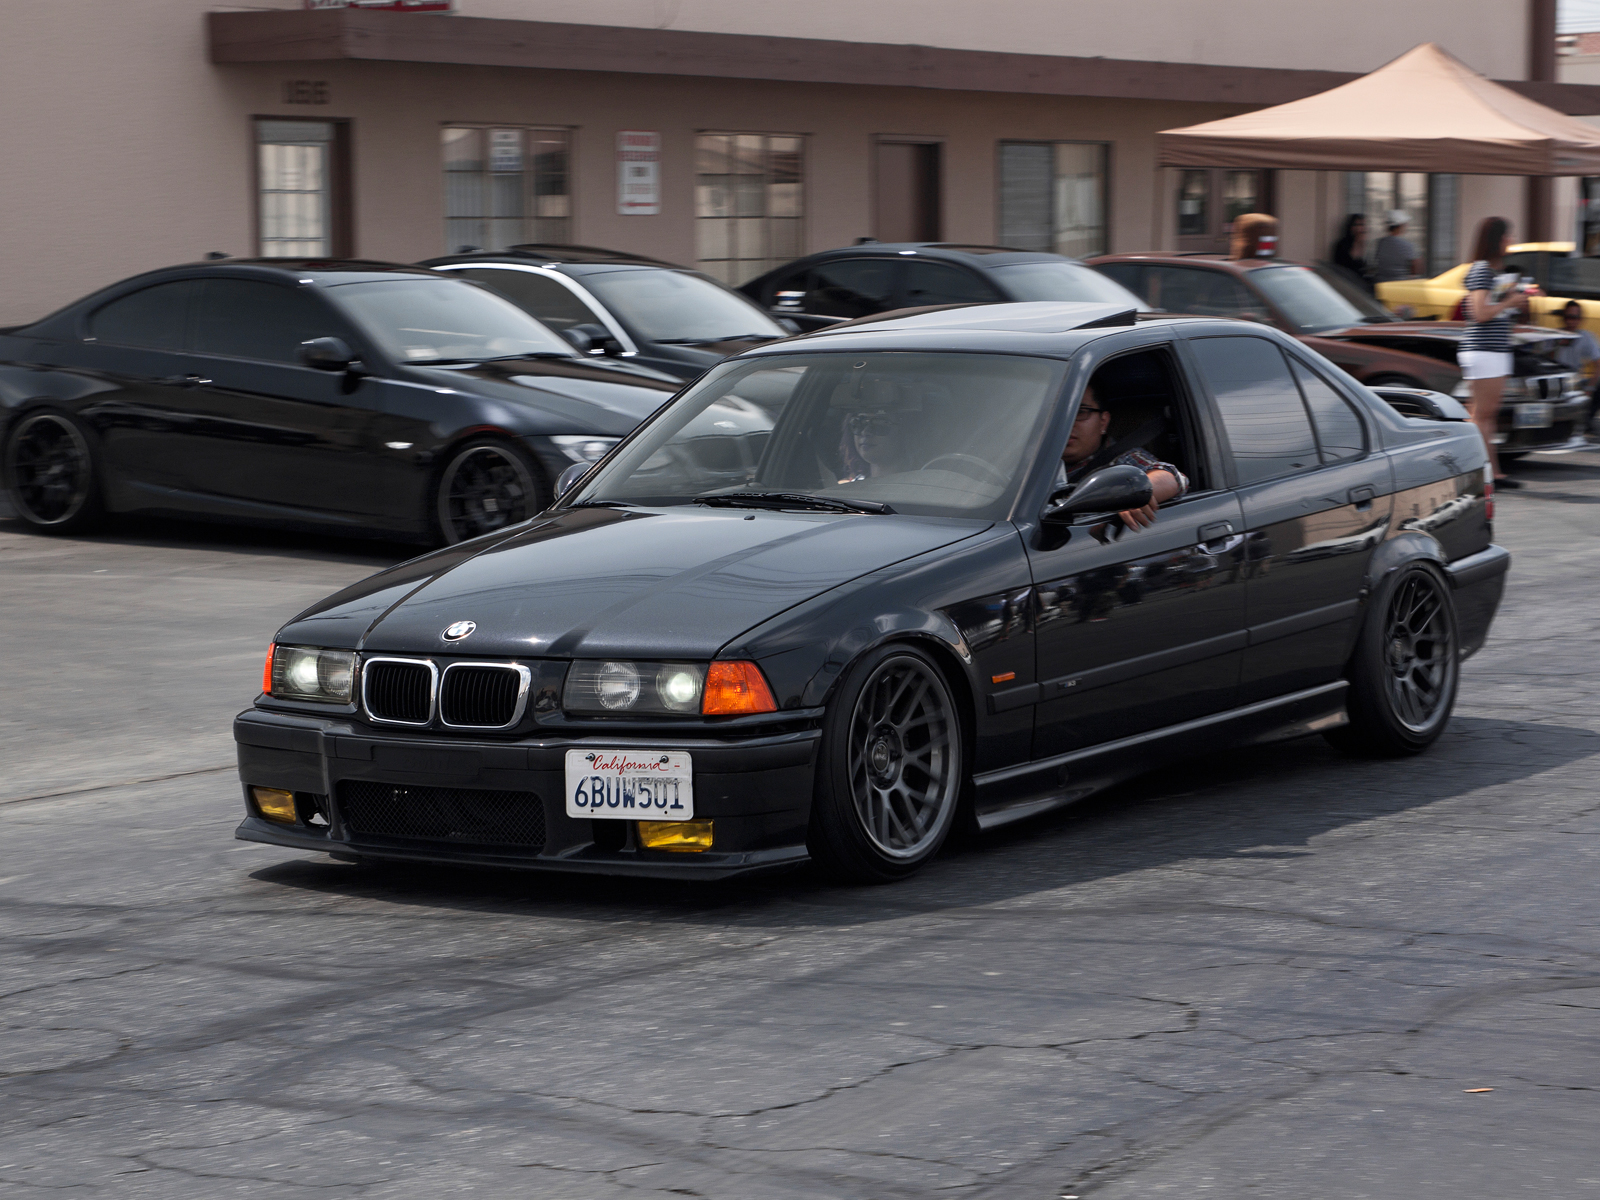 1000 images about bmw e36 m3 on pinterest. Black Bedroom Furniture Sets. Home Design Ideas